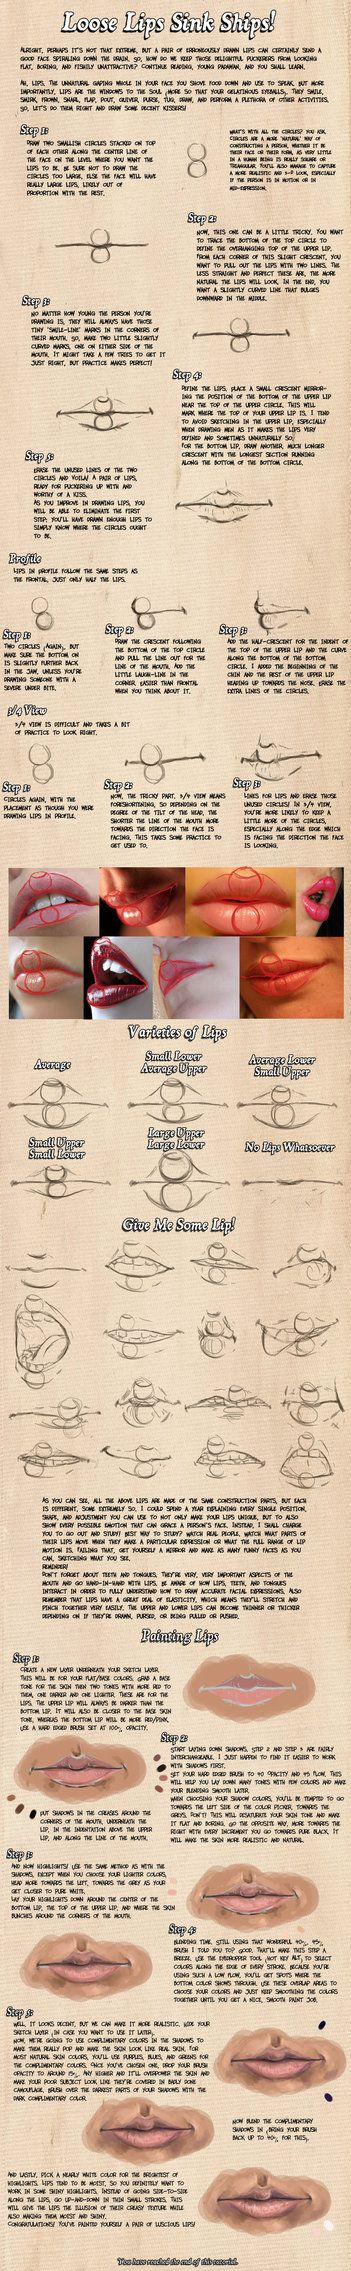 Everything Concerning Lips by *Mytherea on deviantART